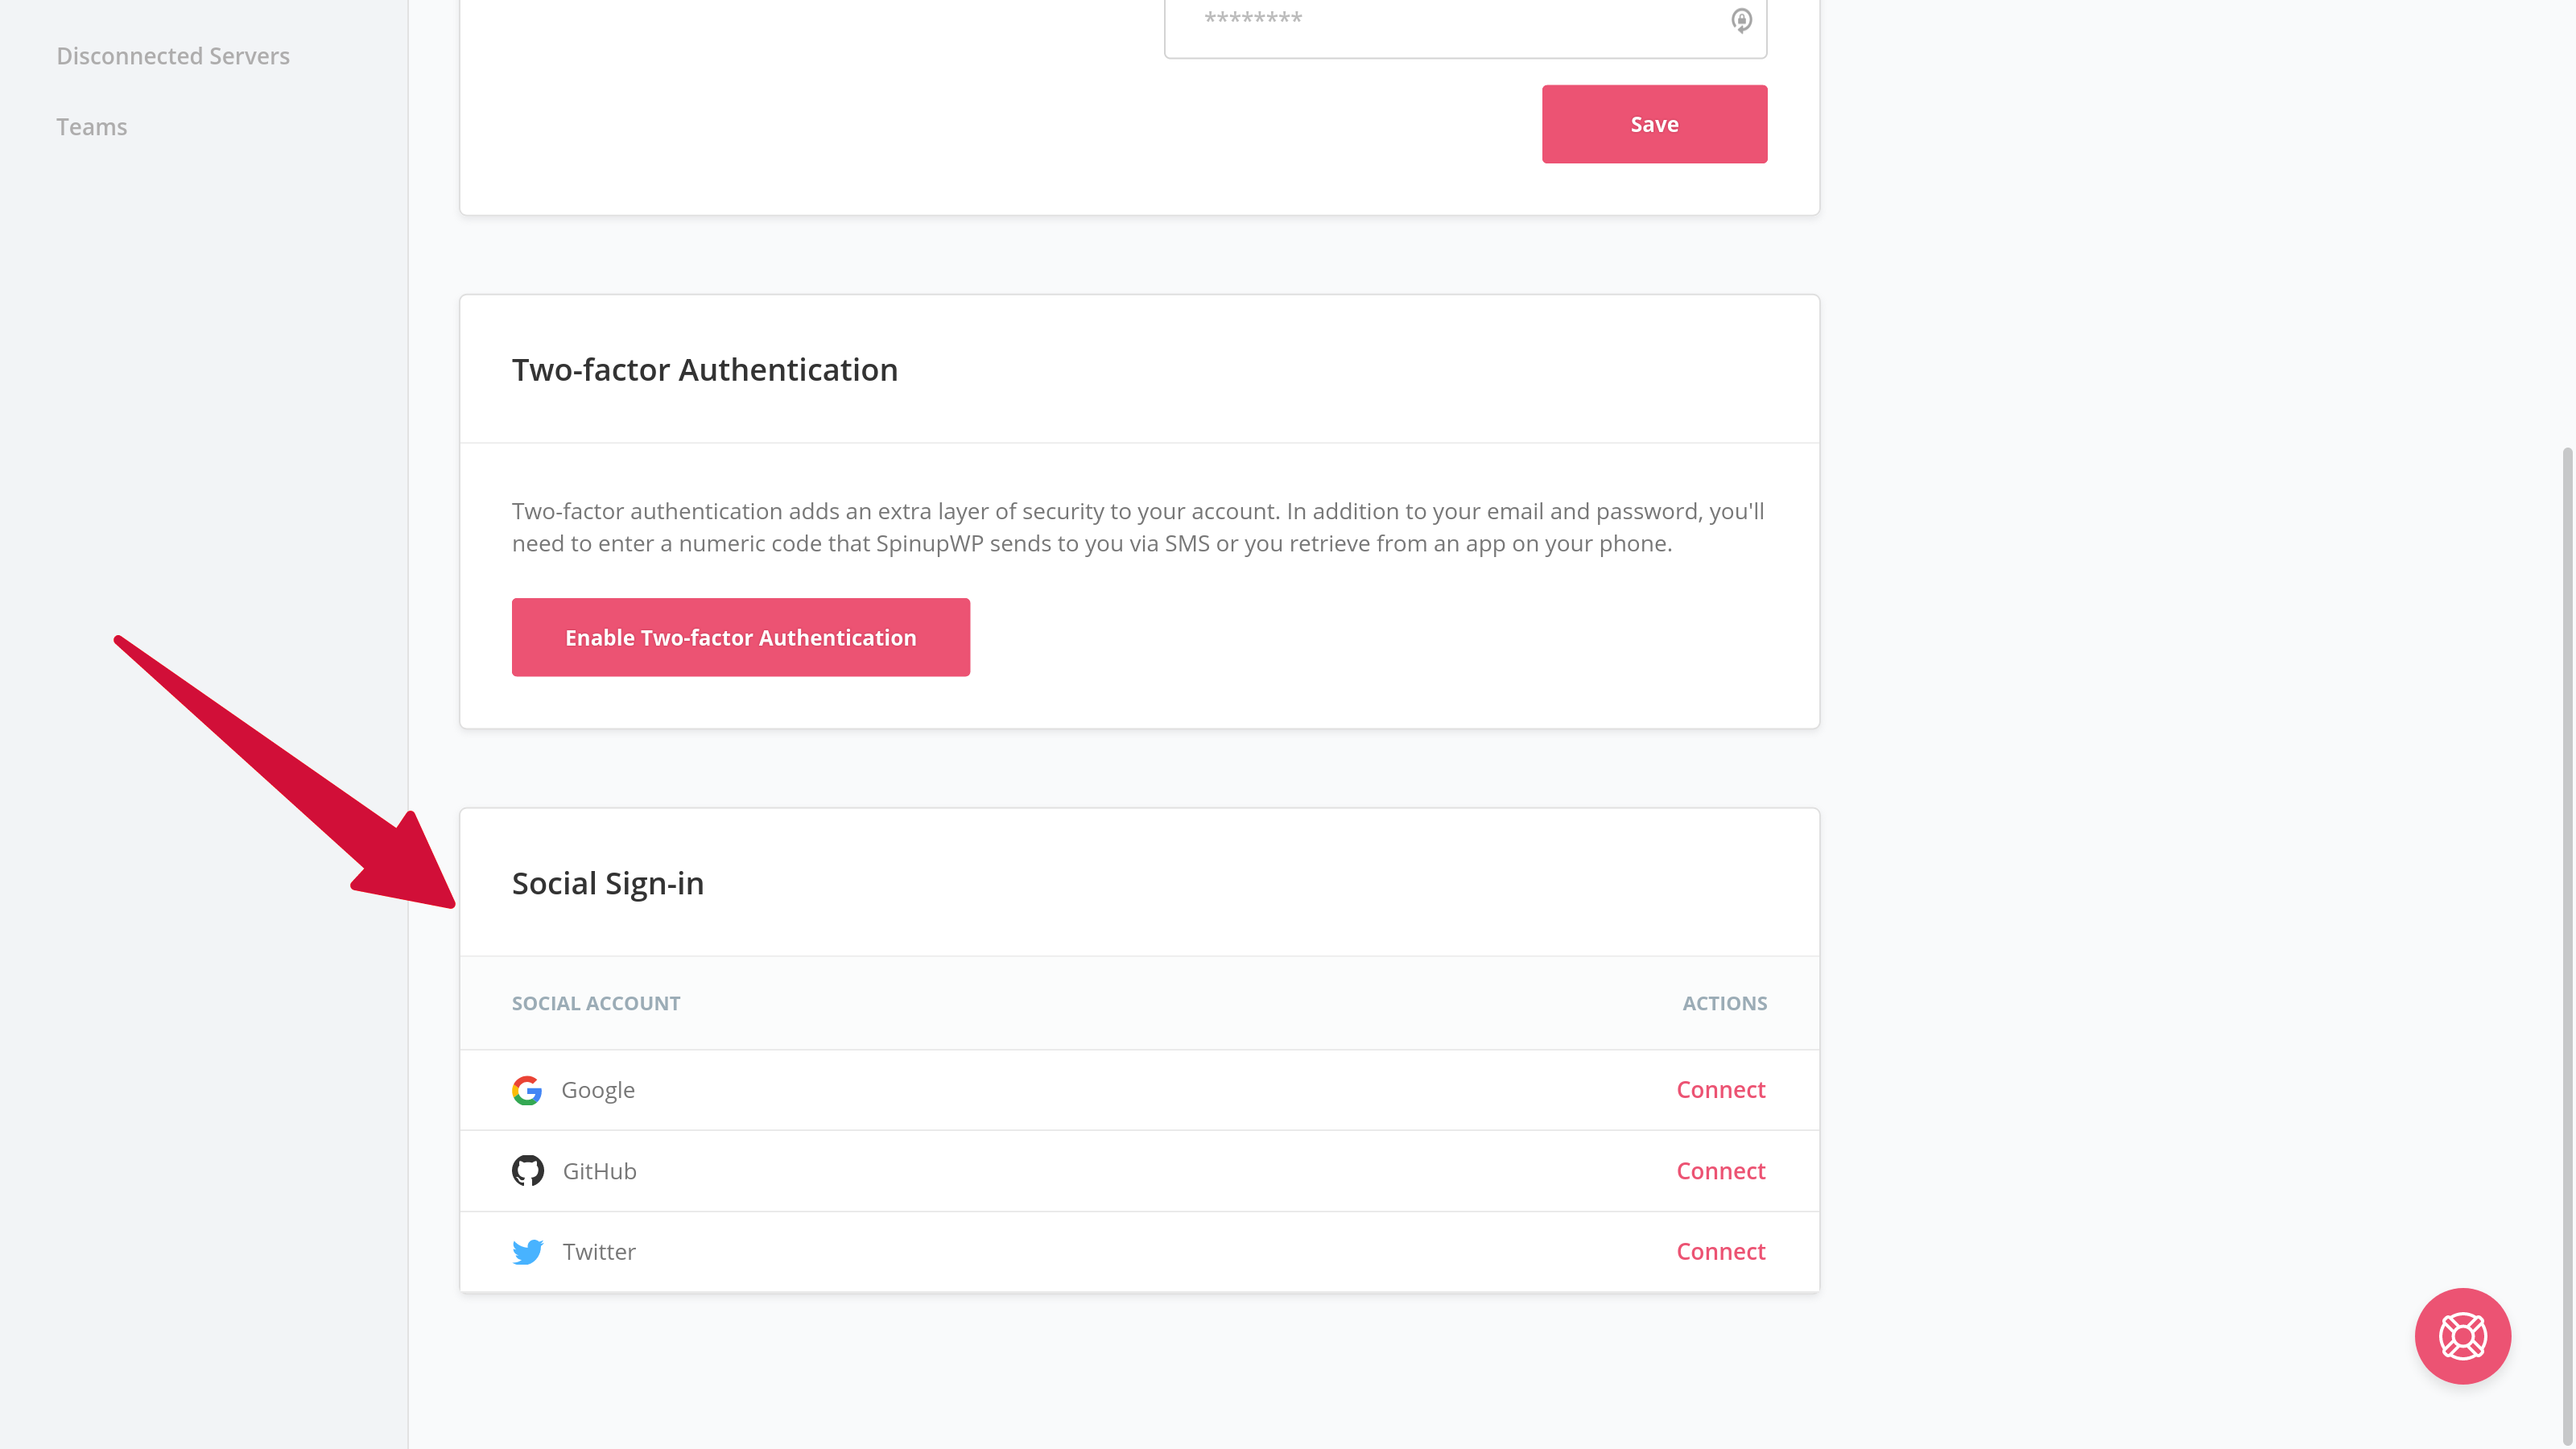 Enable social sign-on